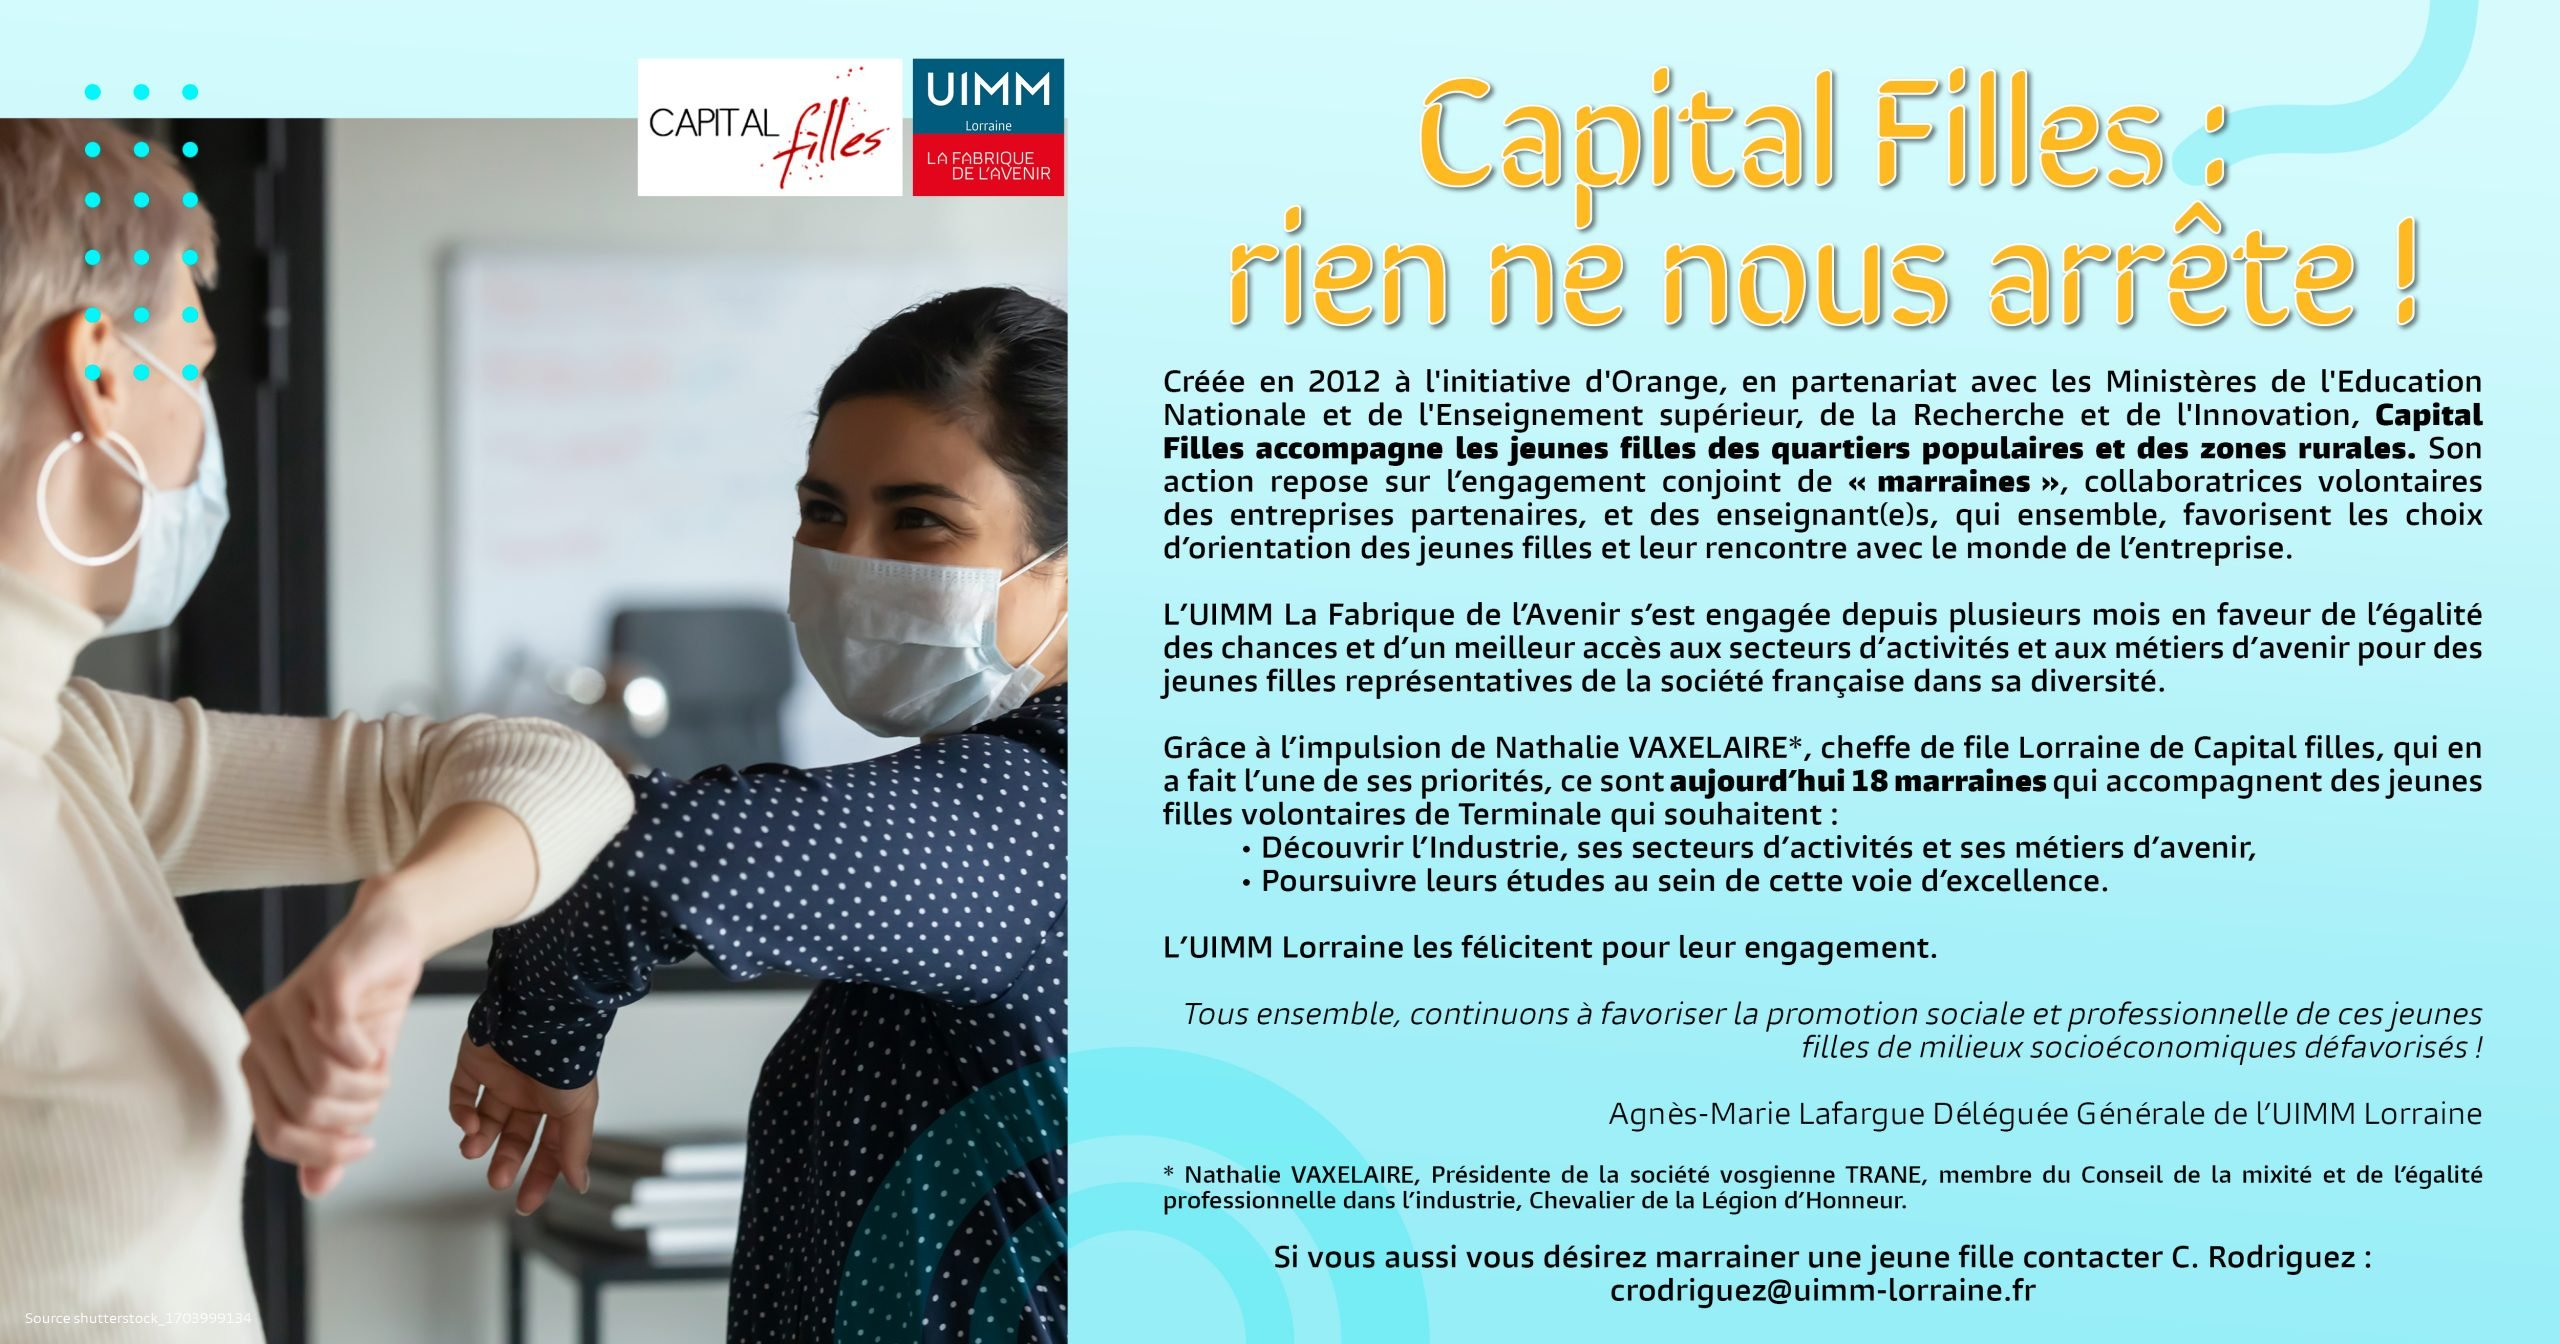 Capital filles, Nathalie Vaxelaire